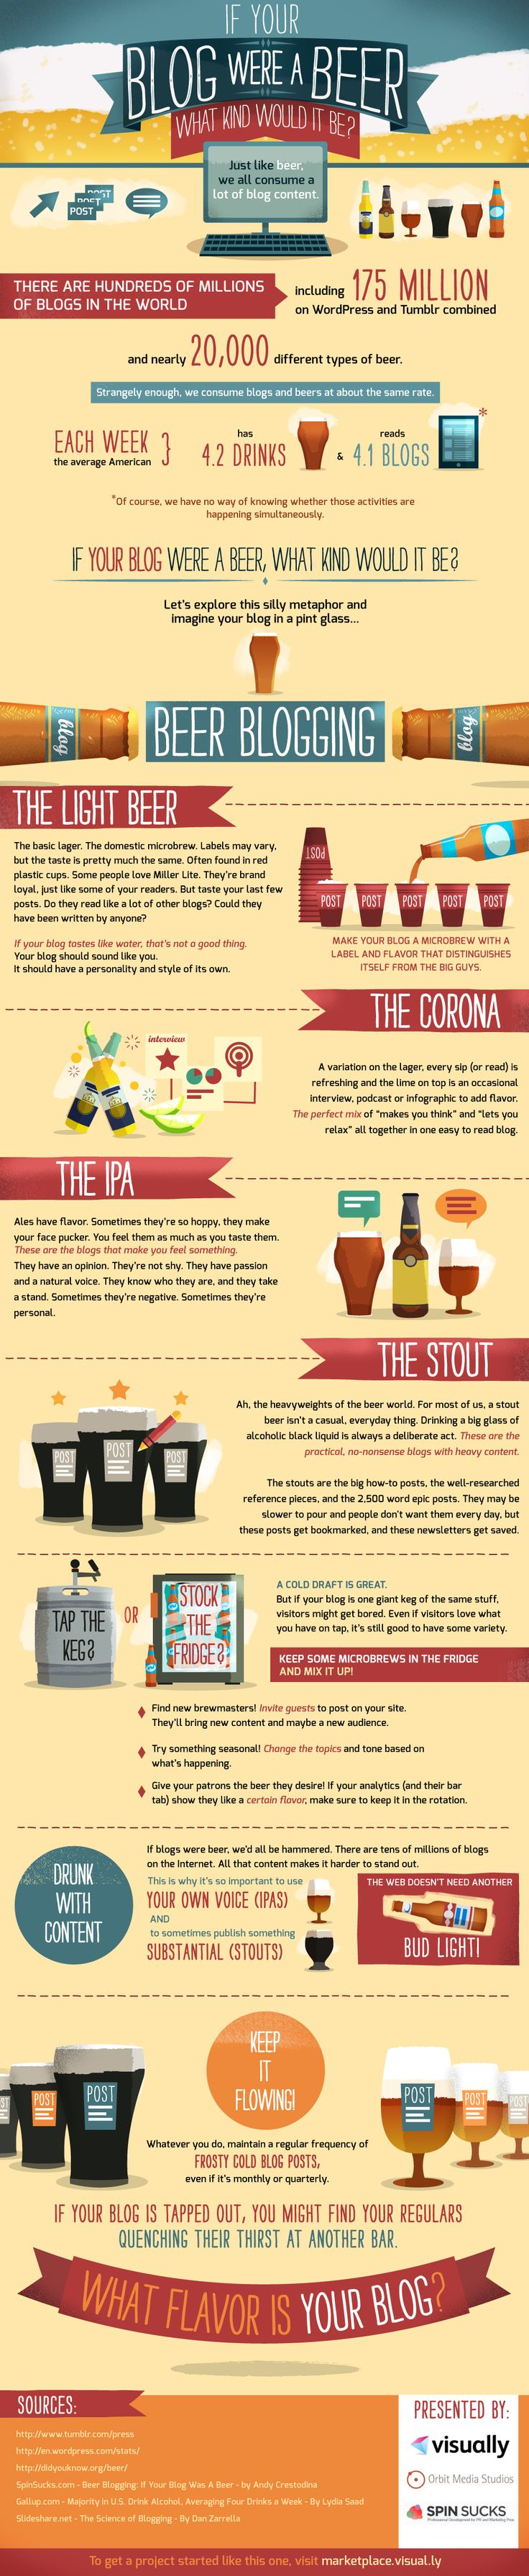 If Your Blog Were A Beer what kind would it be?